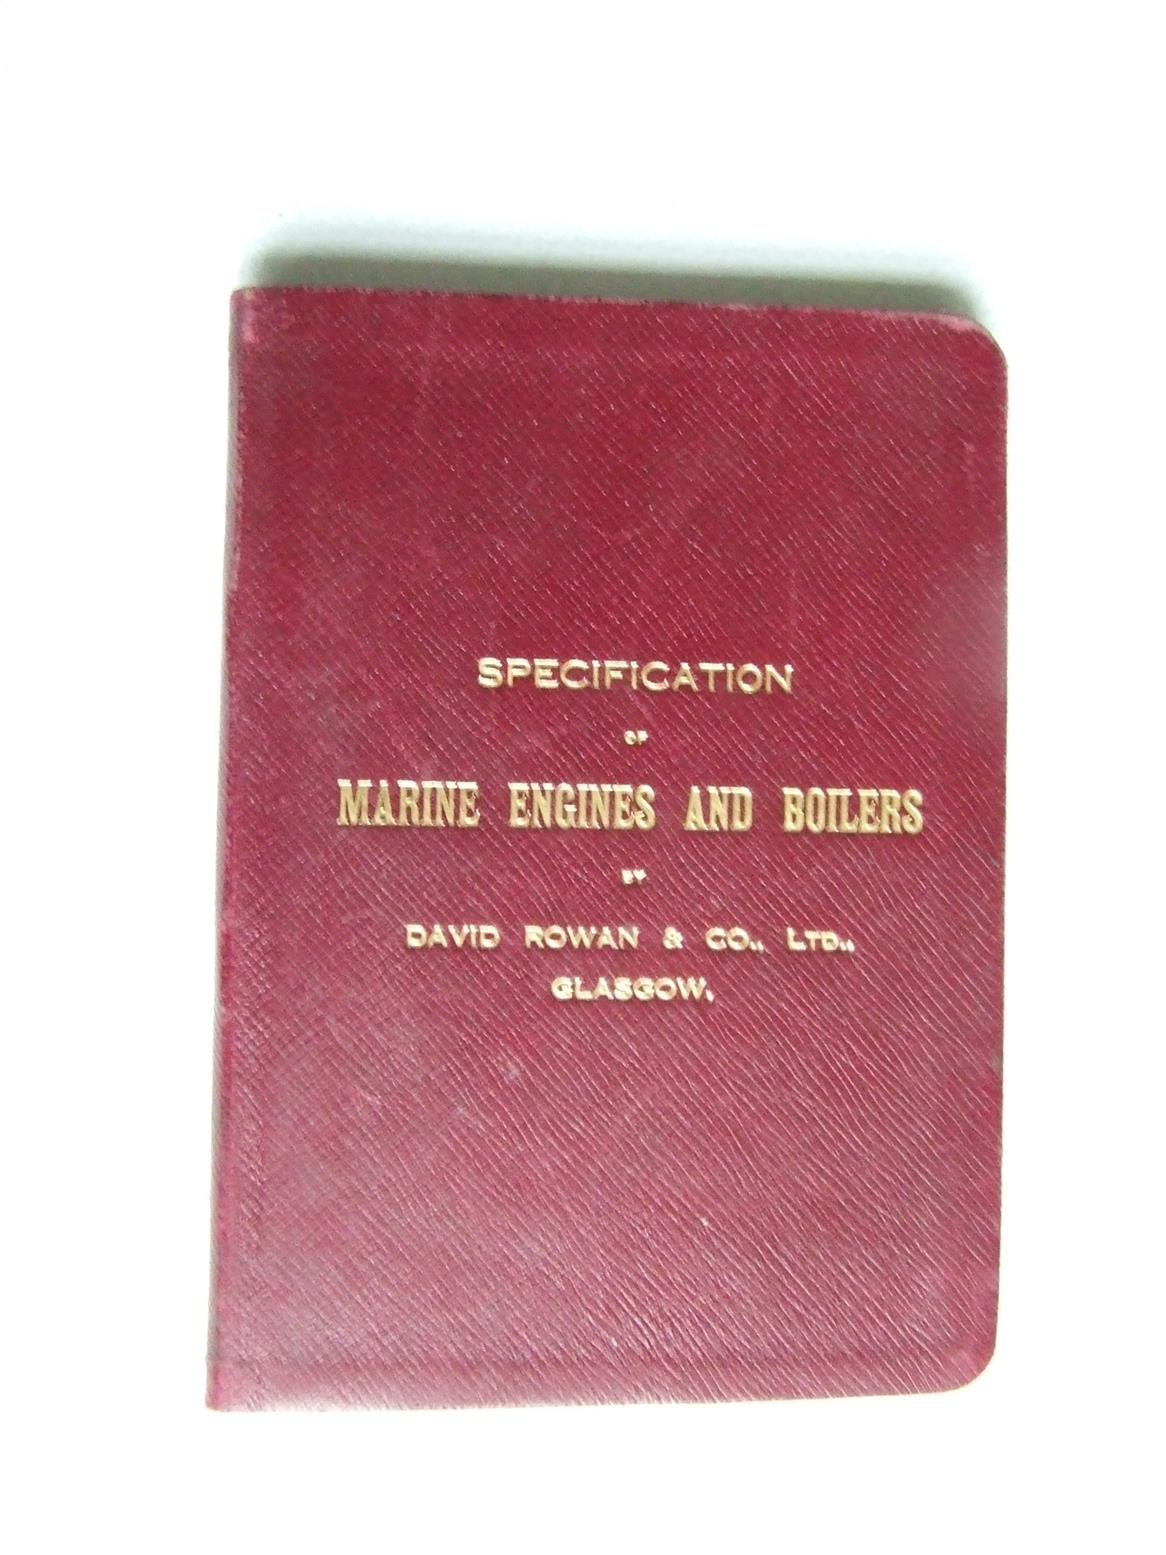 Specification of Marine Engines and Boilers by David Rowan & Co. Ltd. Glasgow